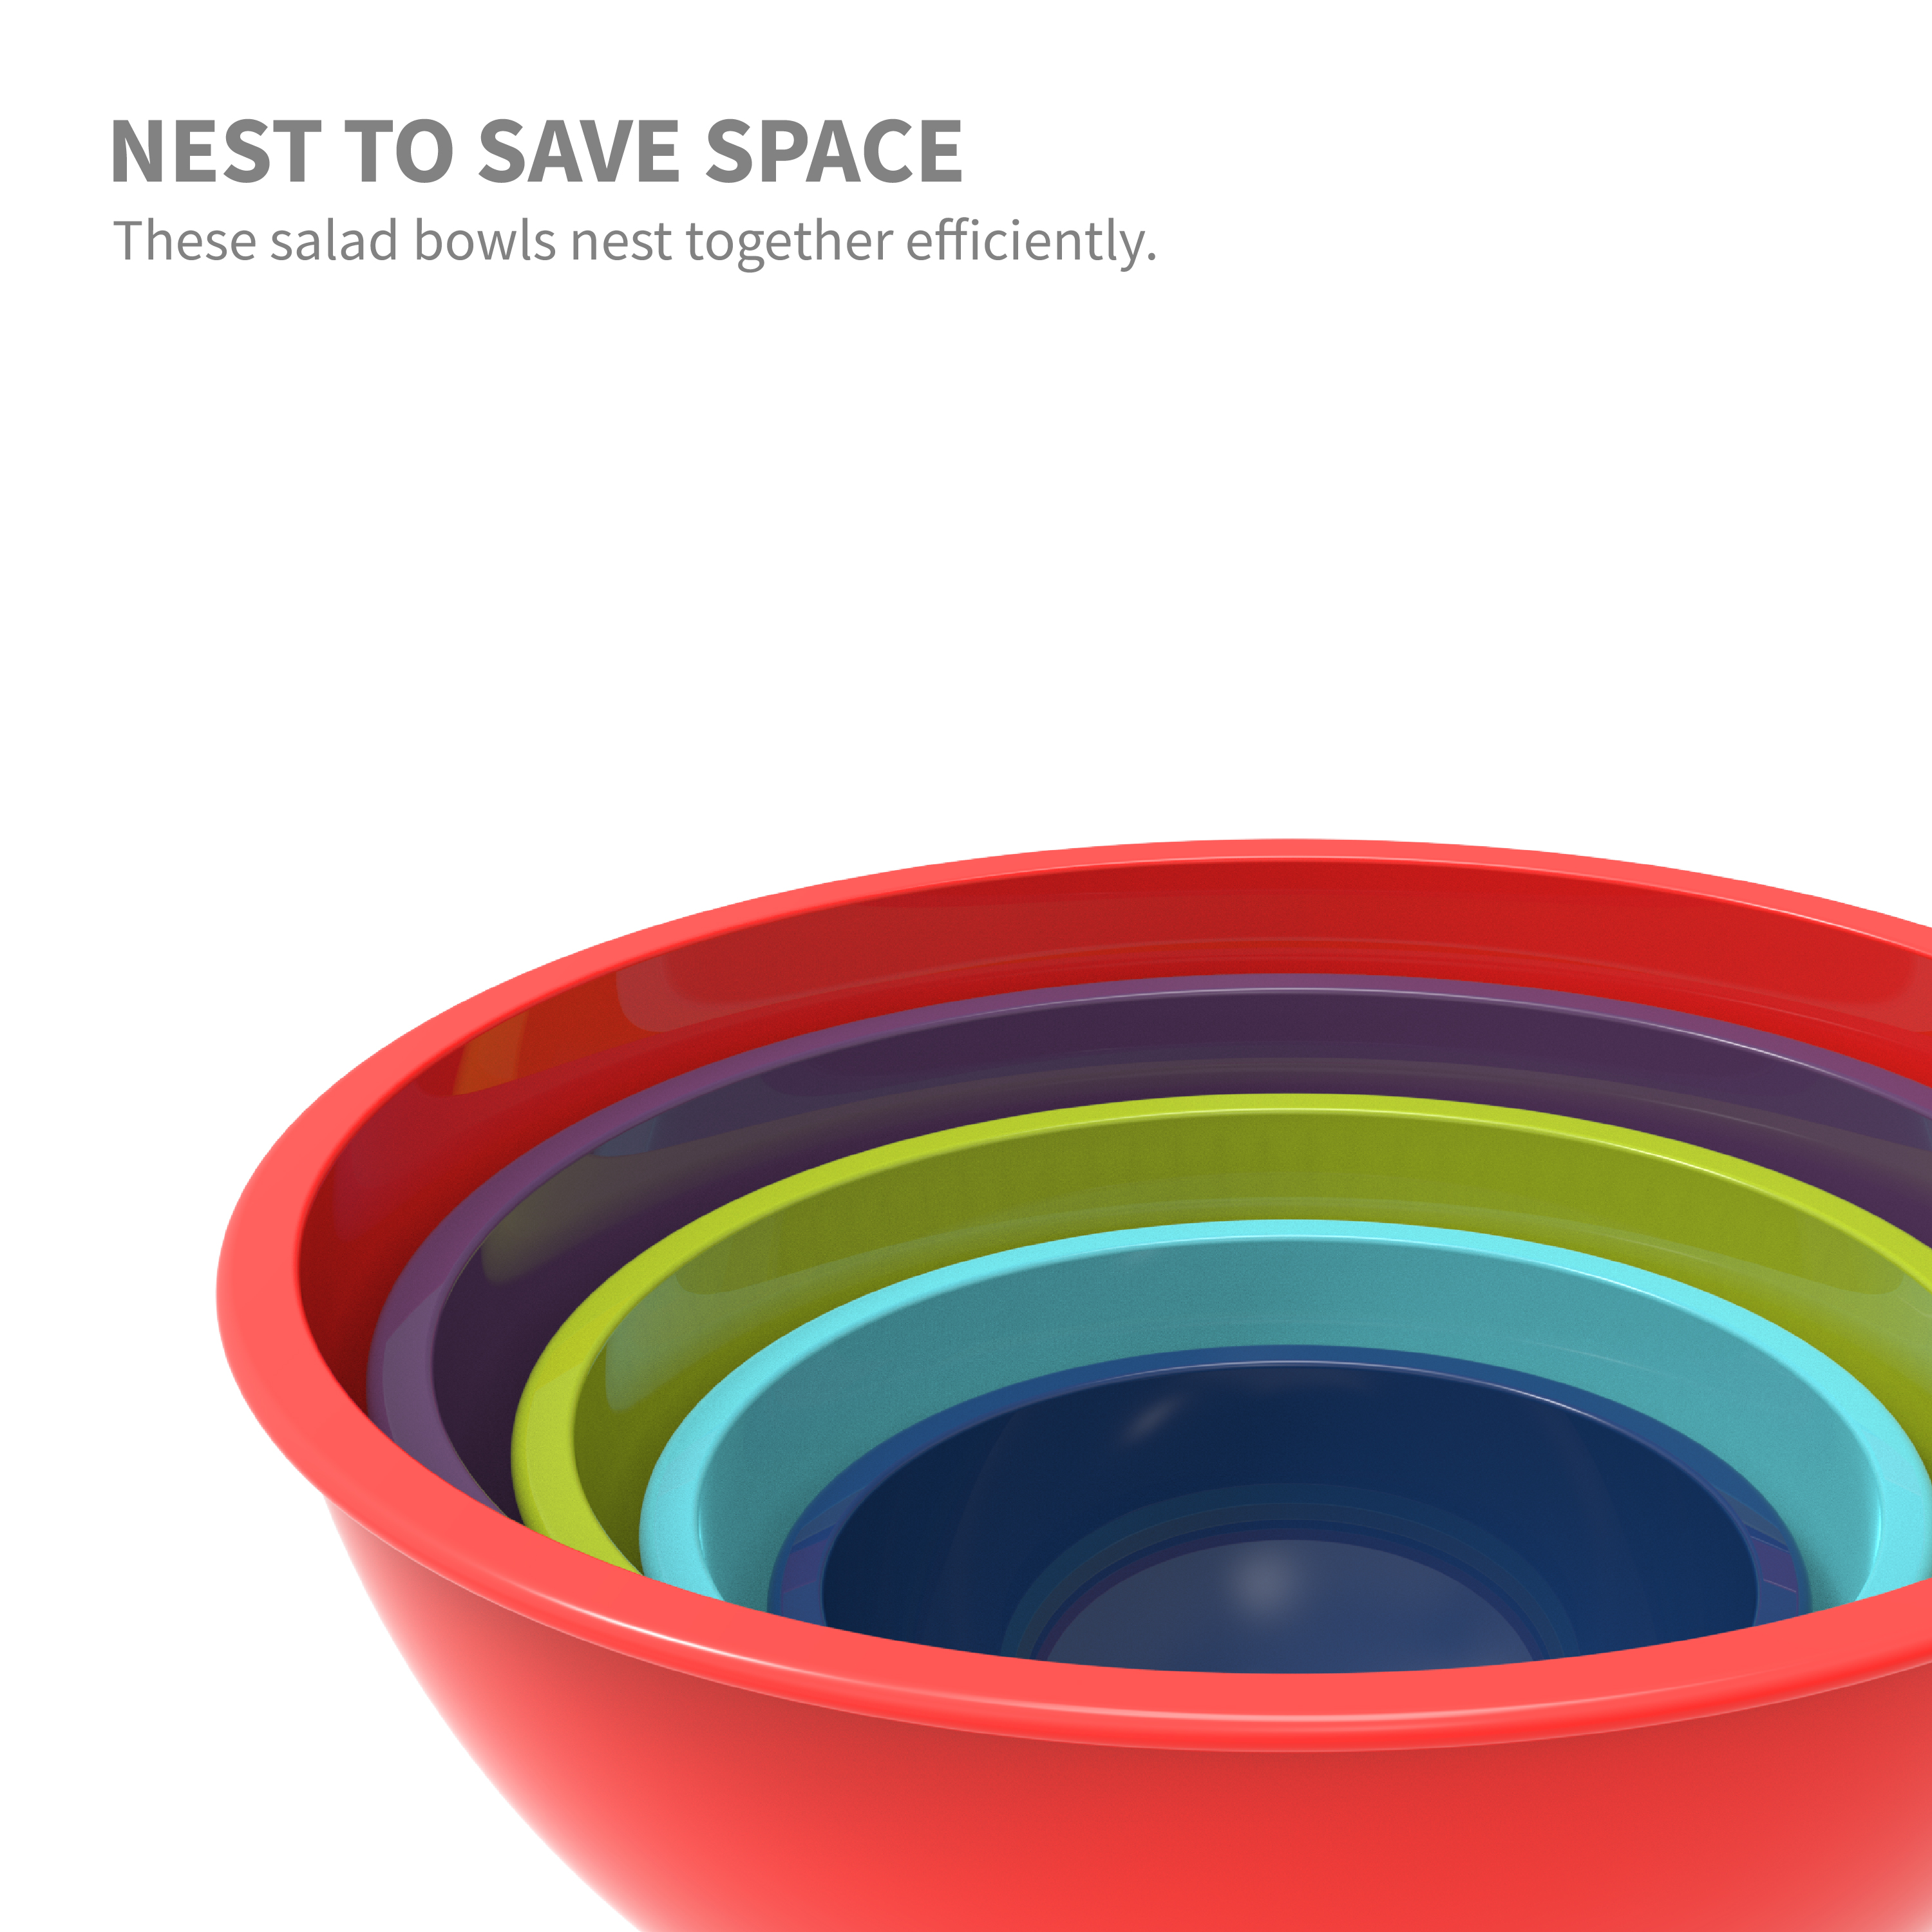 Colorway Plastic Serving and Mixing Bowl Set, Blue and Red, 5-piece set slideshow image 3